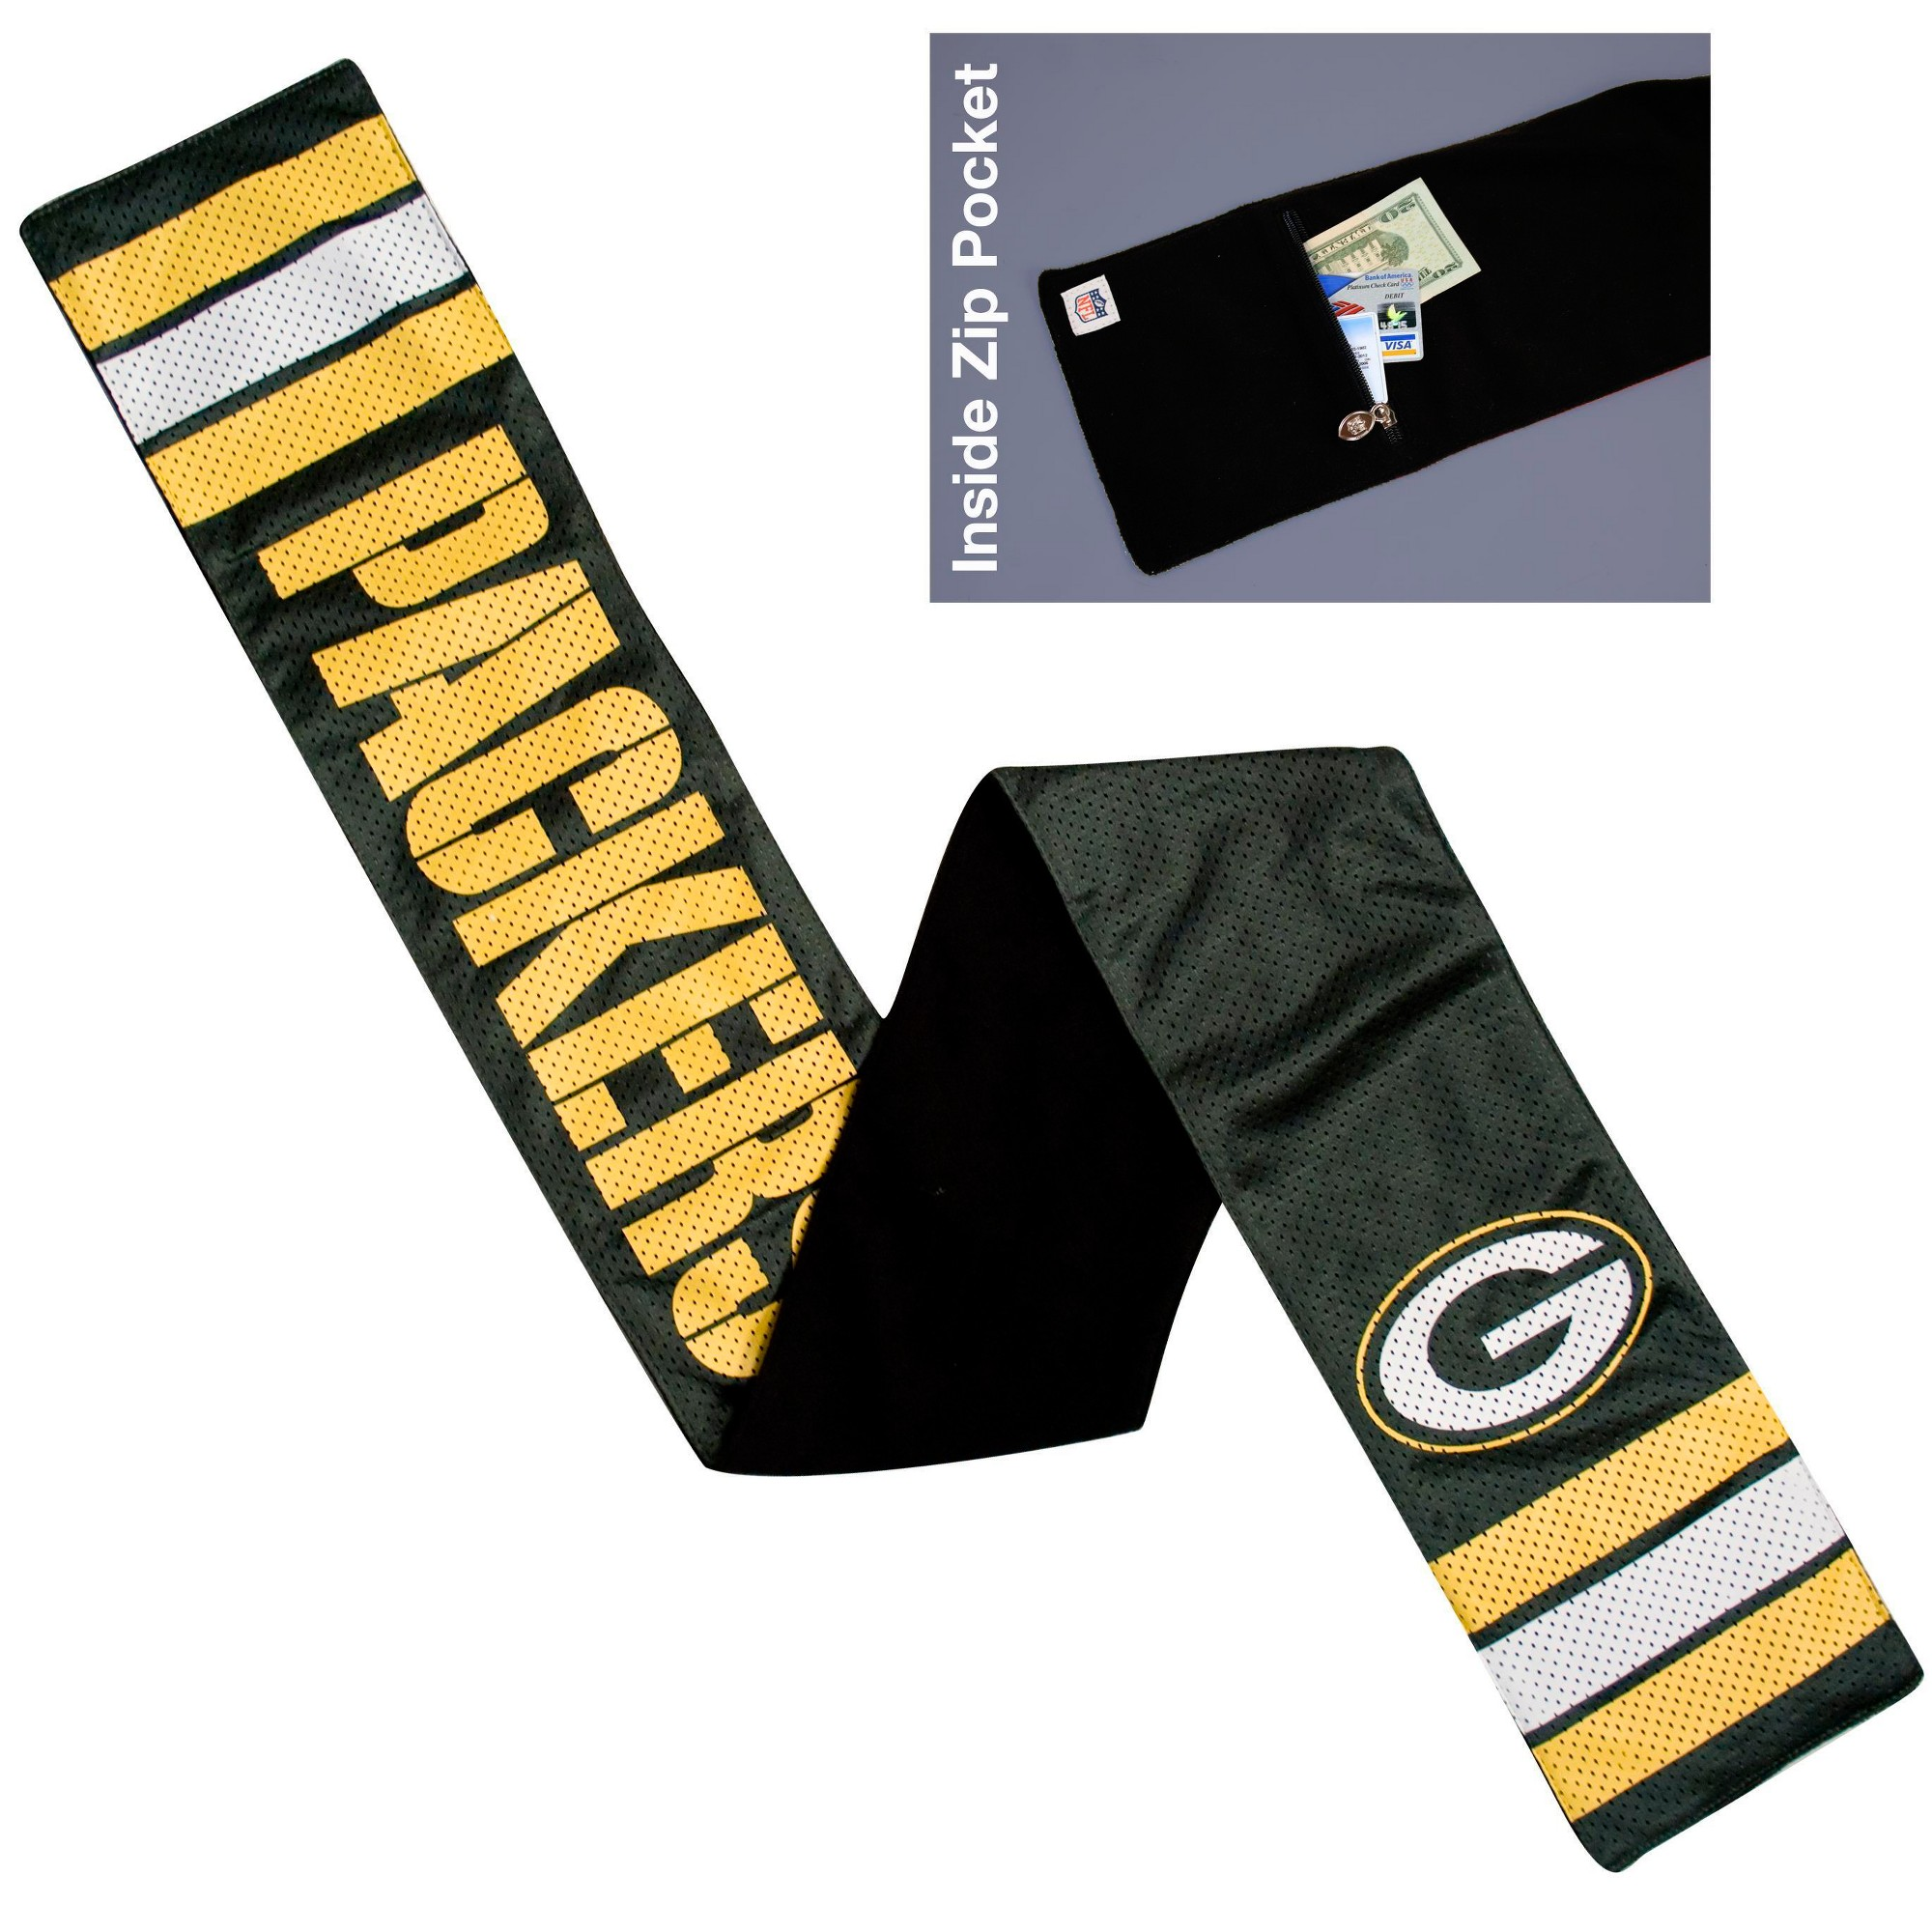 b6342a8c2 NFL Green Bay Packers Jersey Scarf